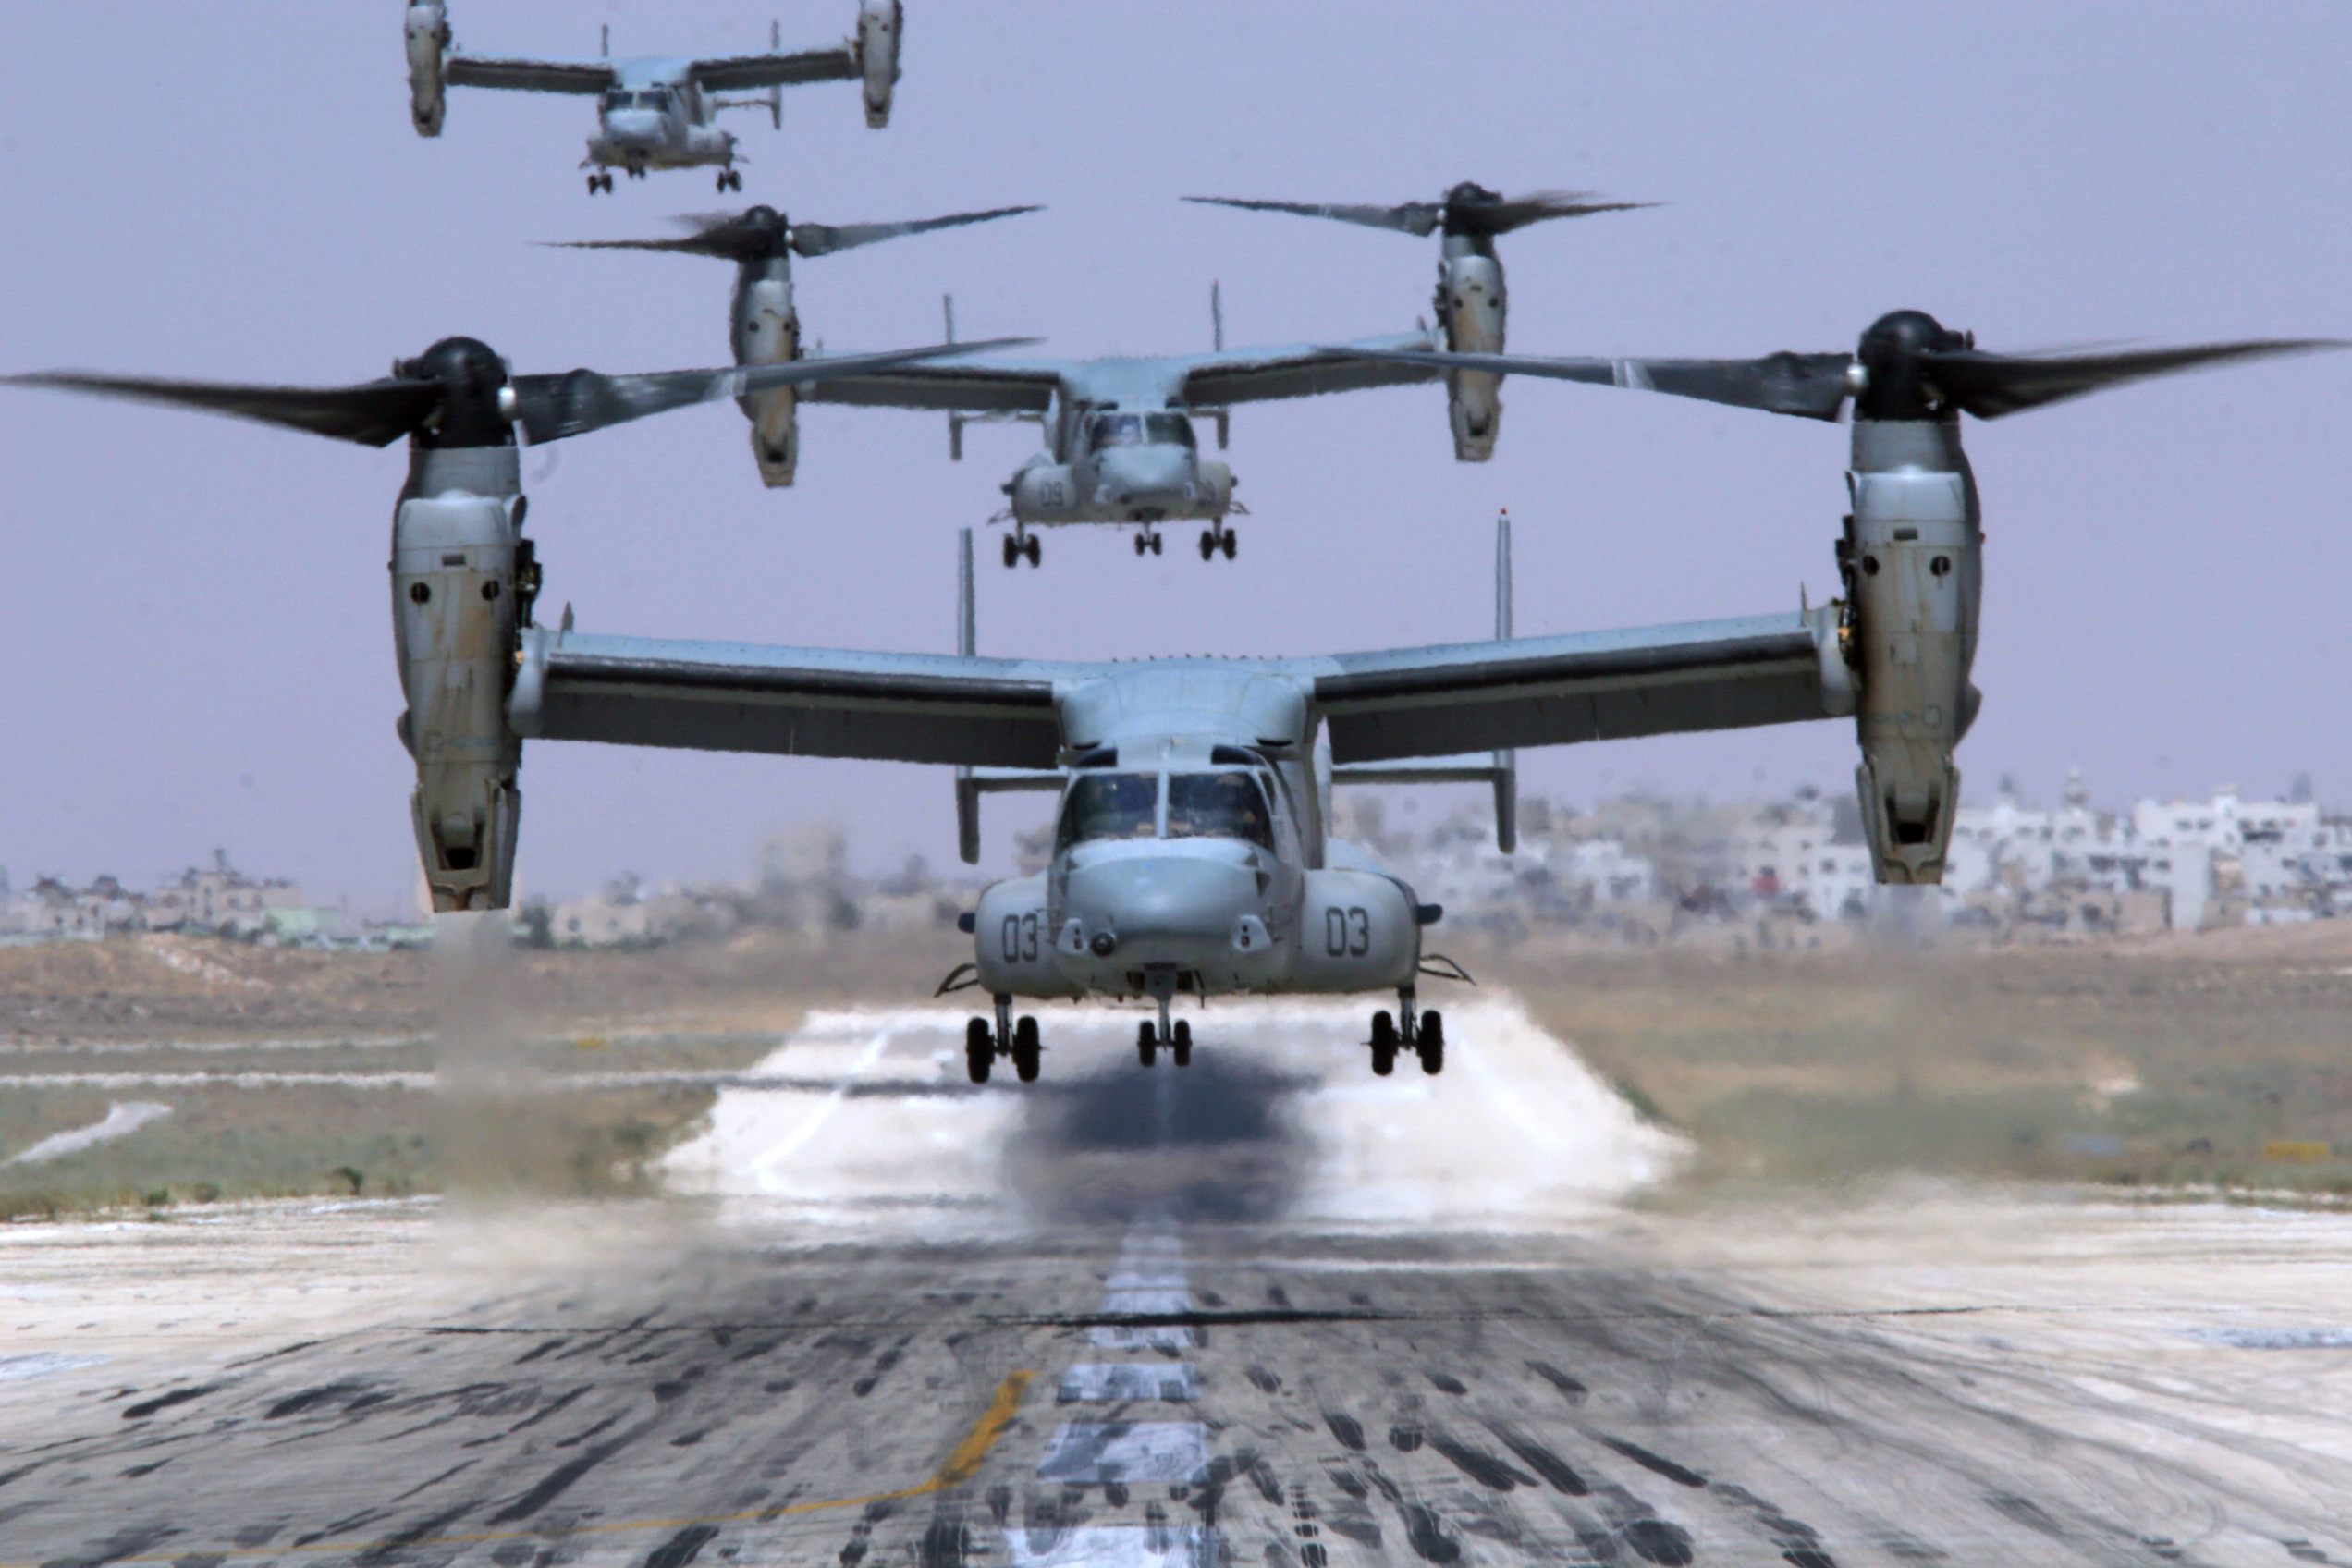 Aircraft V-22 Osprey HD Wallpaper